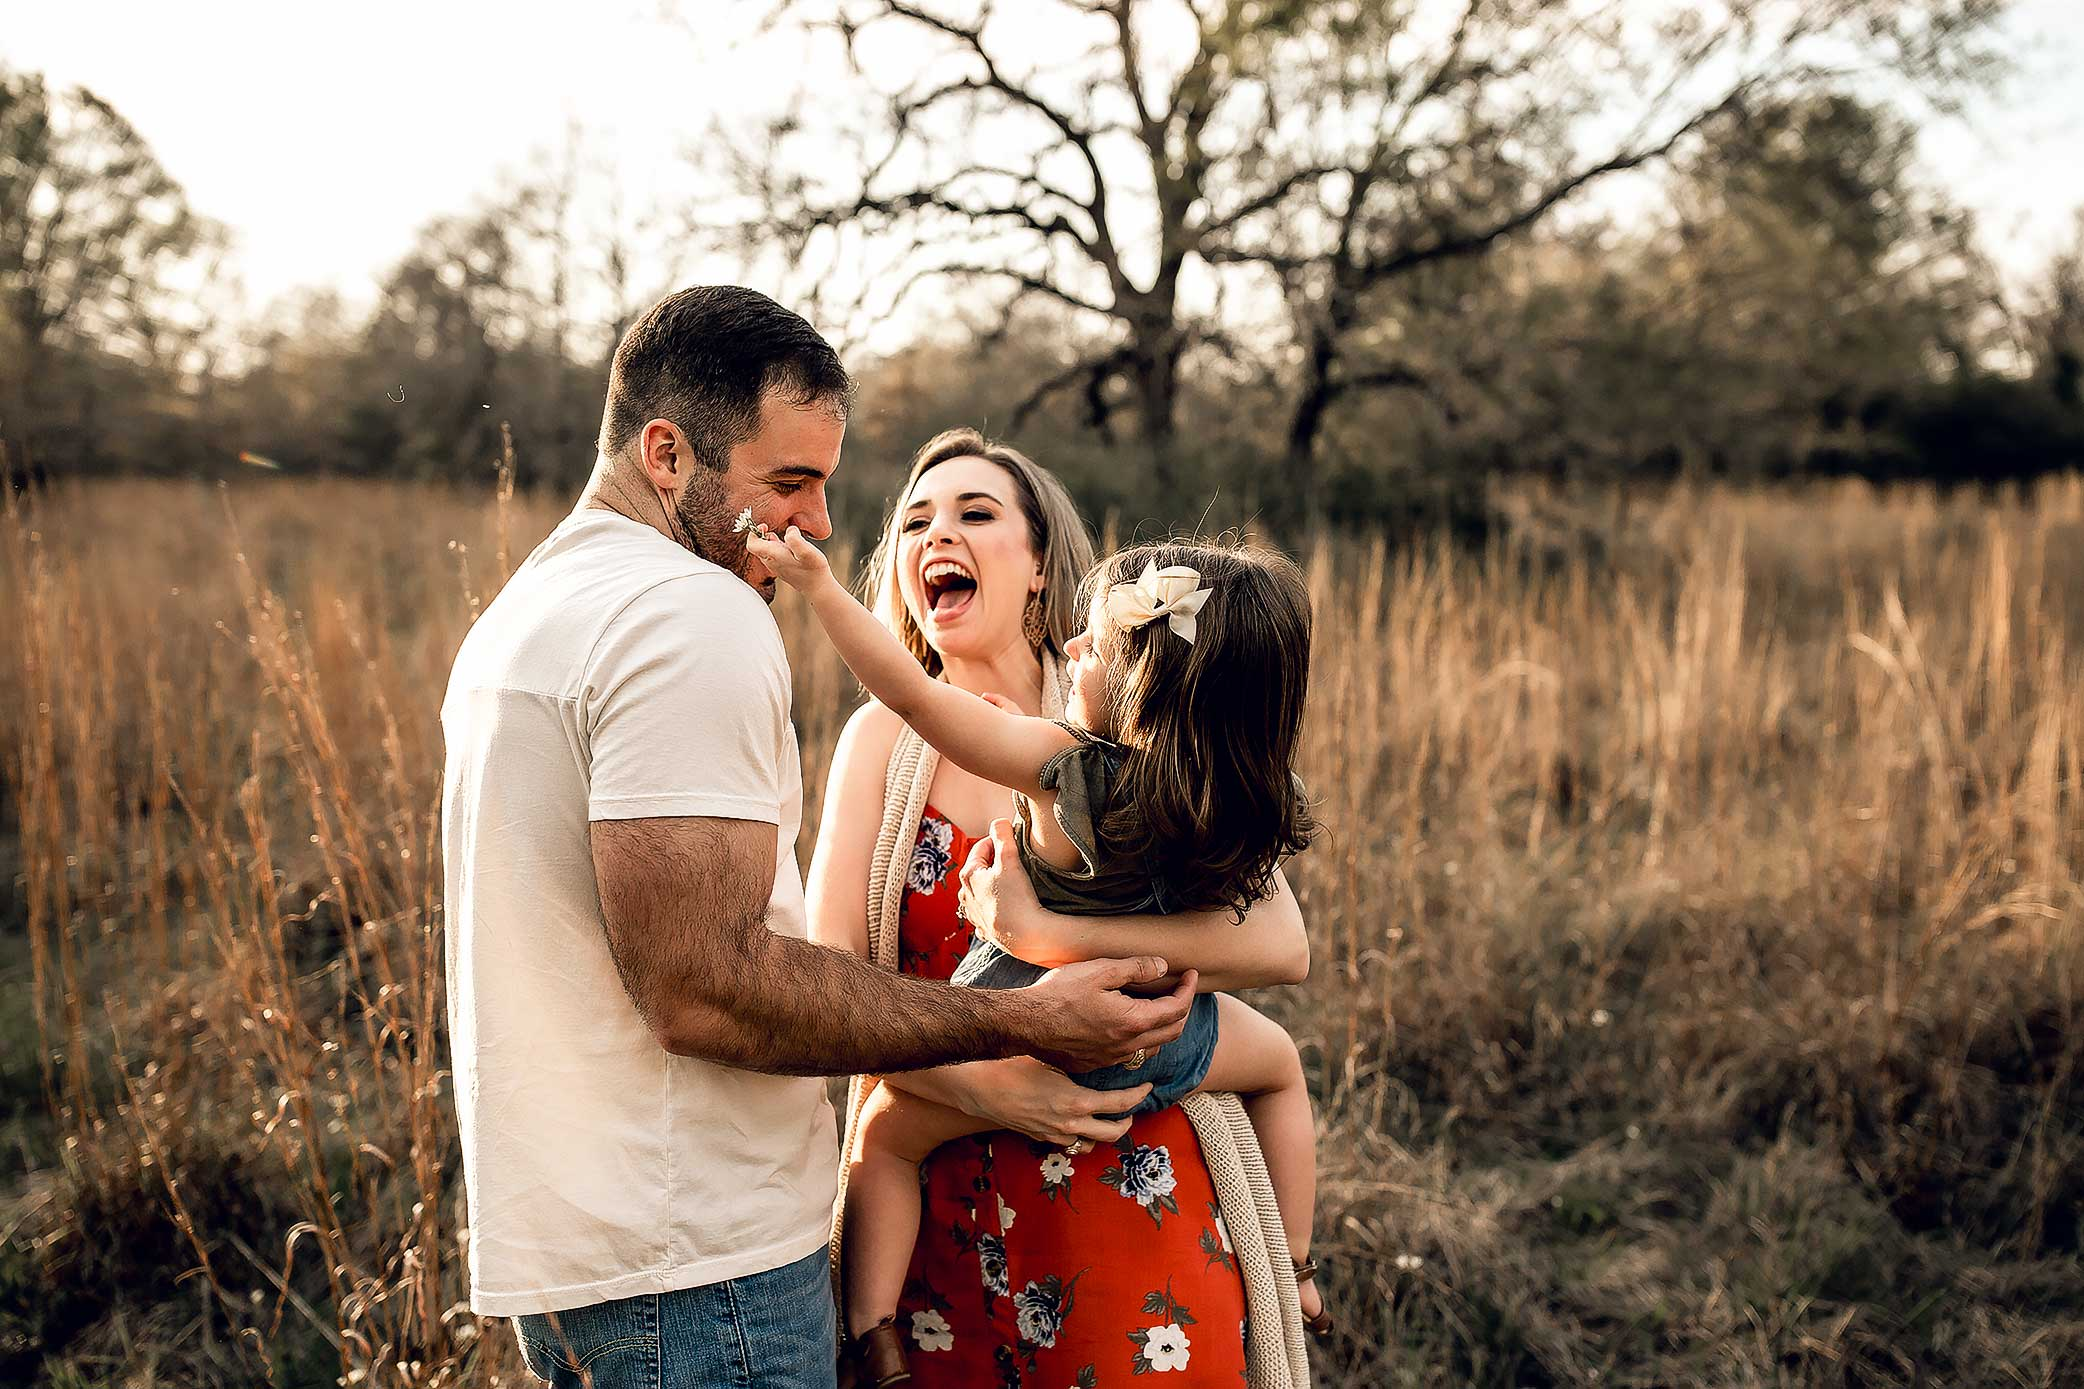 shelby-schiller-photography-sunset-family-pictures-spring-2019-22.jpg